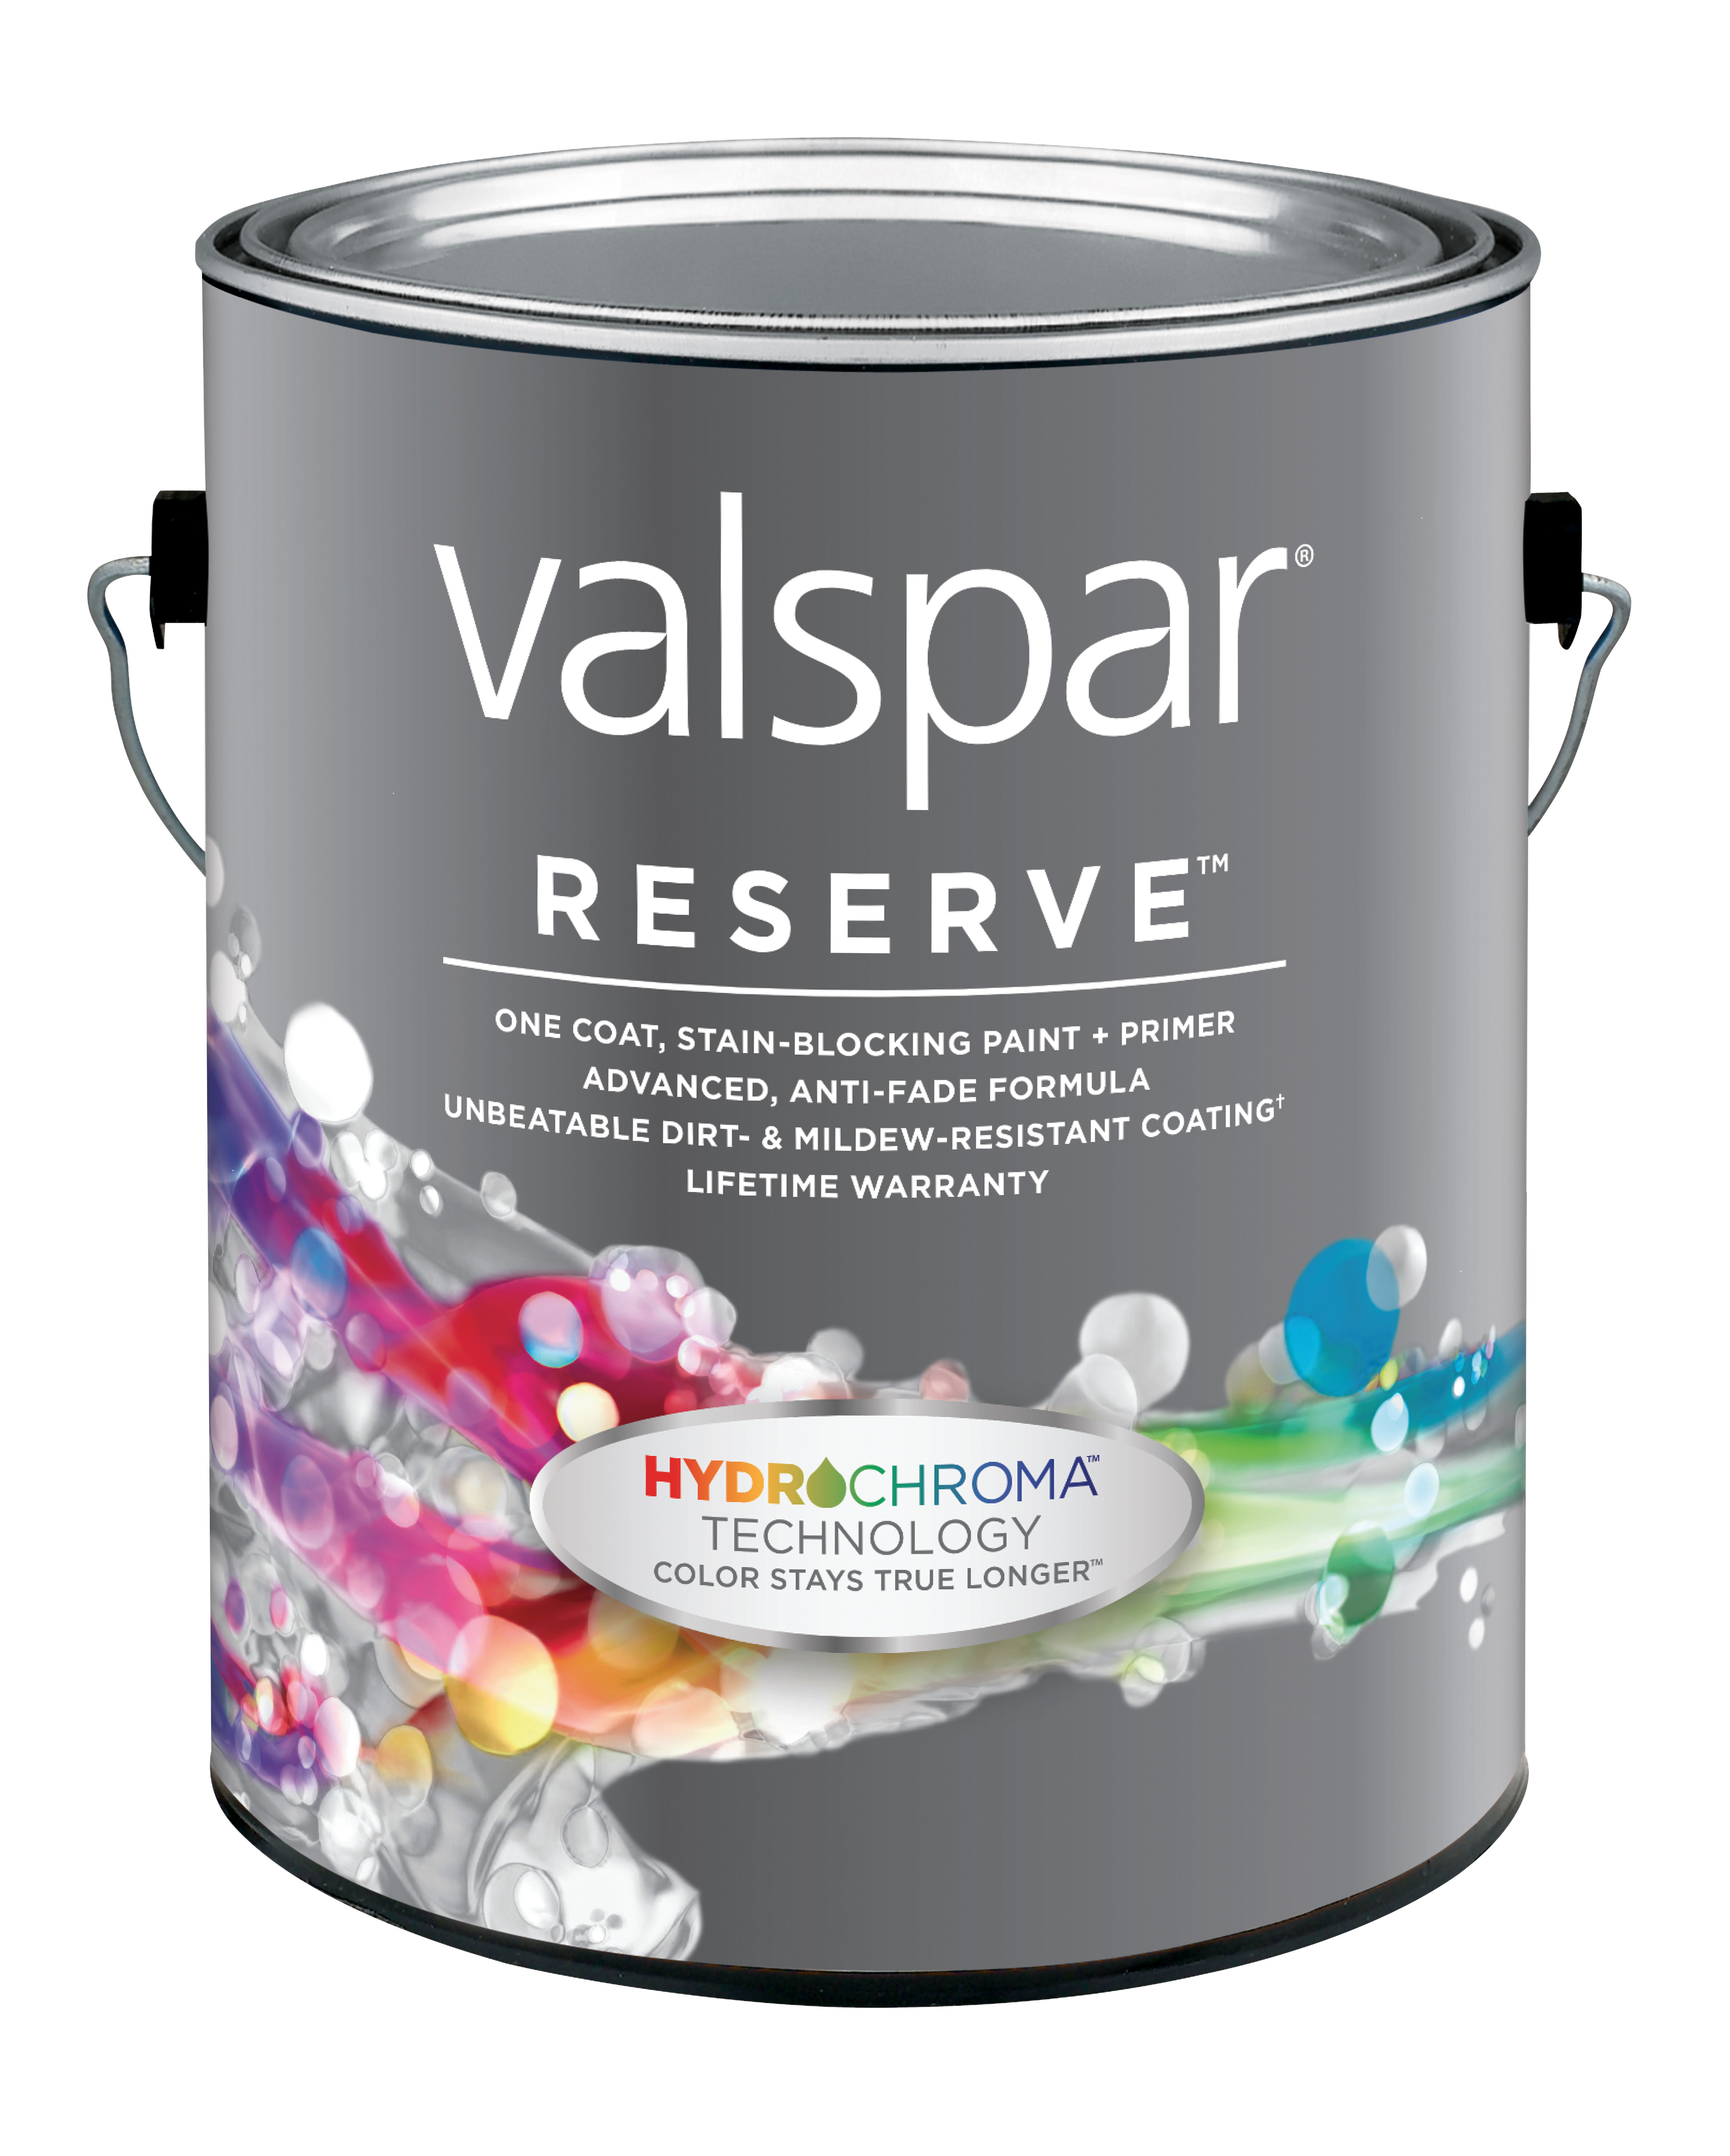 Valspar Reserve Exterior Paint + Primer with HydroChroma Technology (Photo: Business Wire)